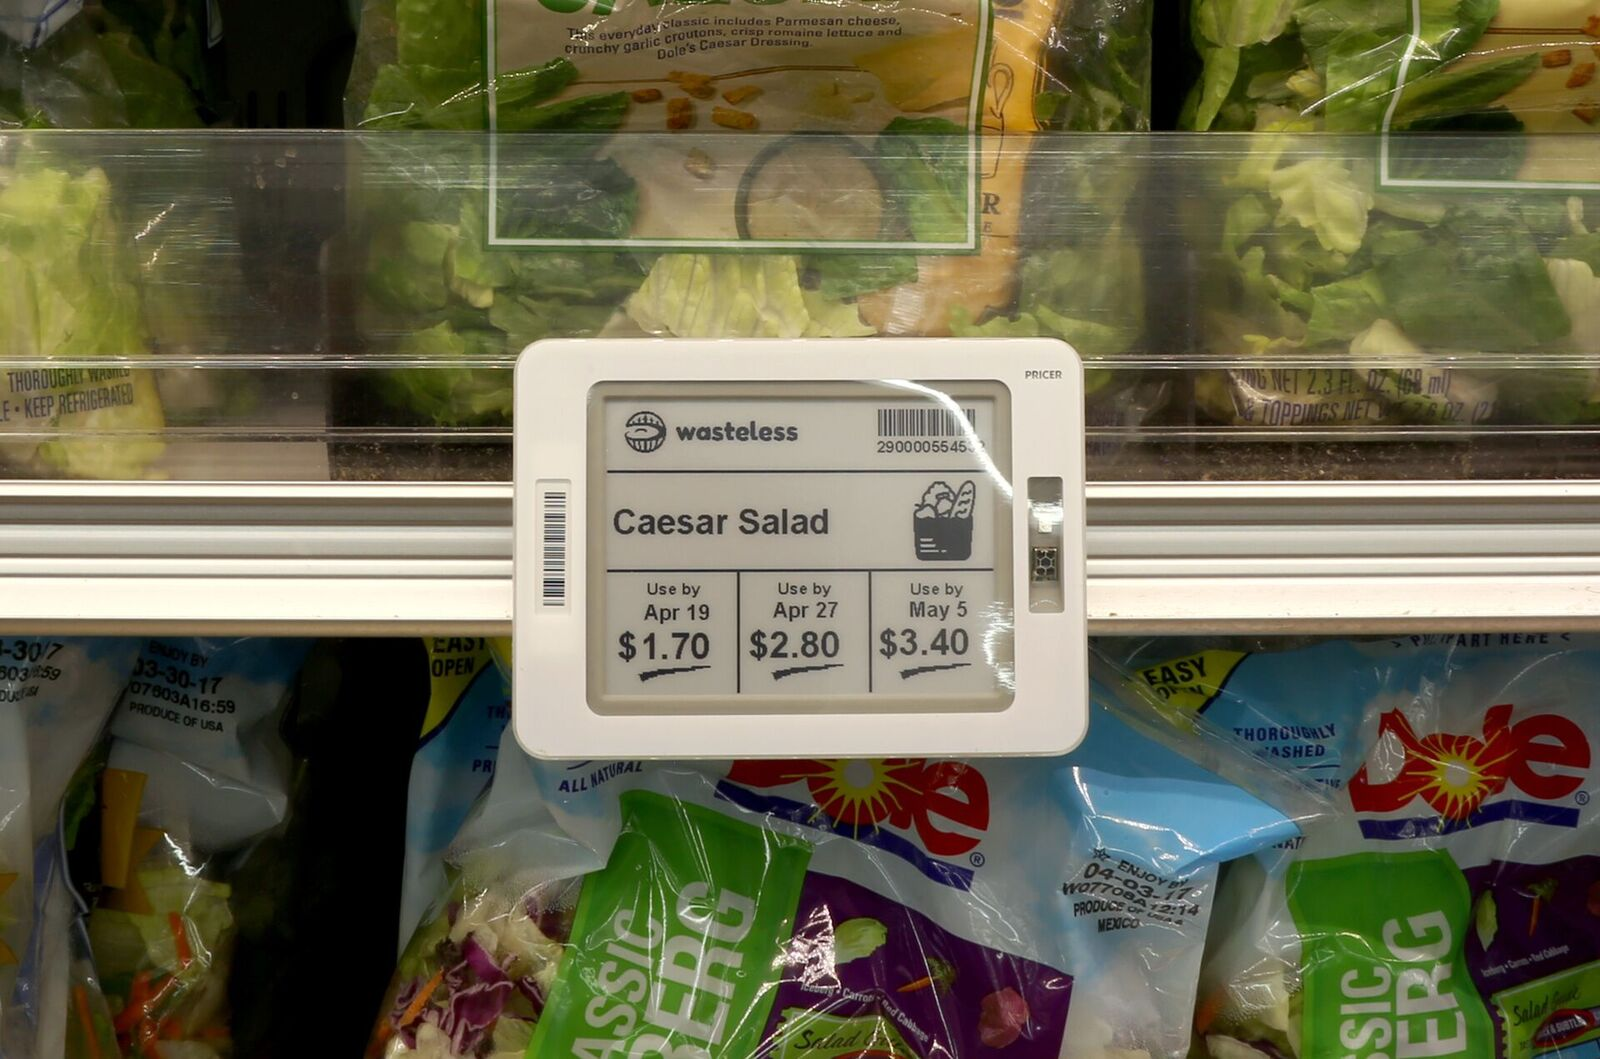 Combating food waste in retail: Pioneering technology cuts price as